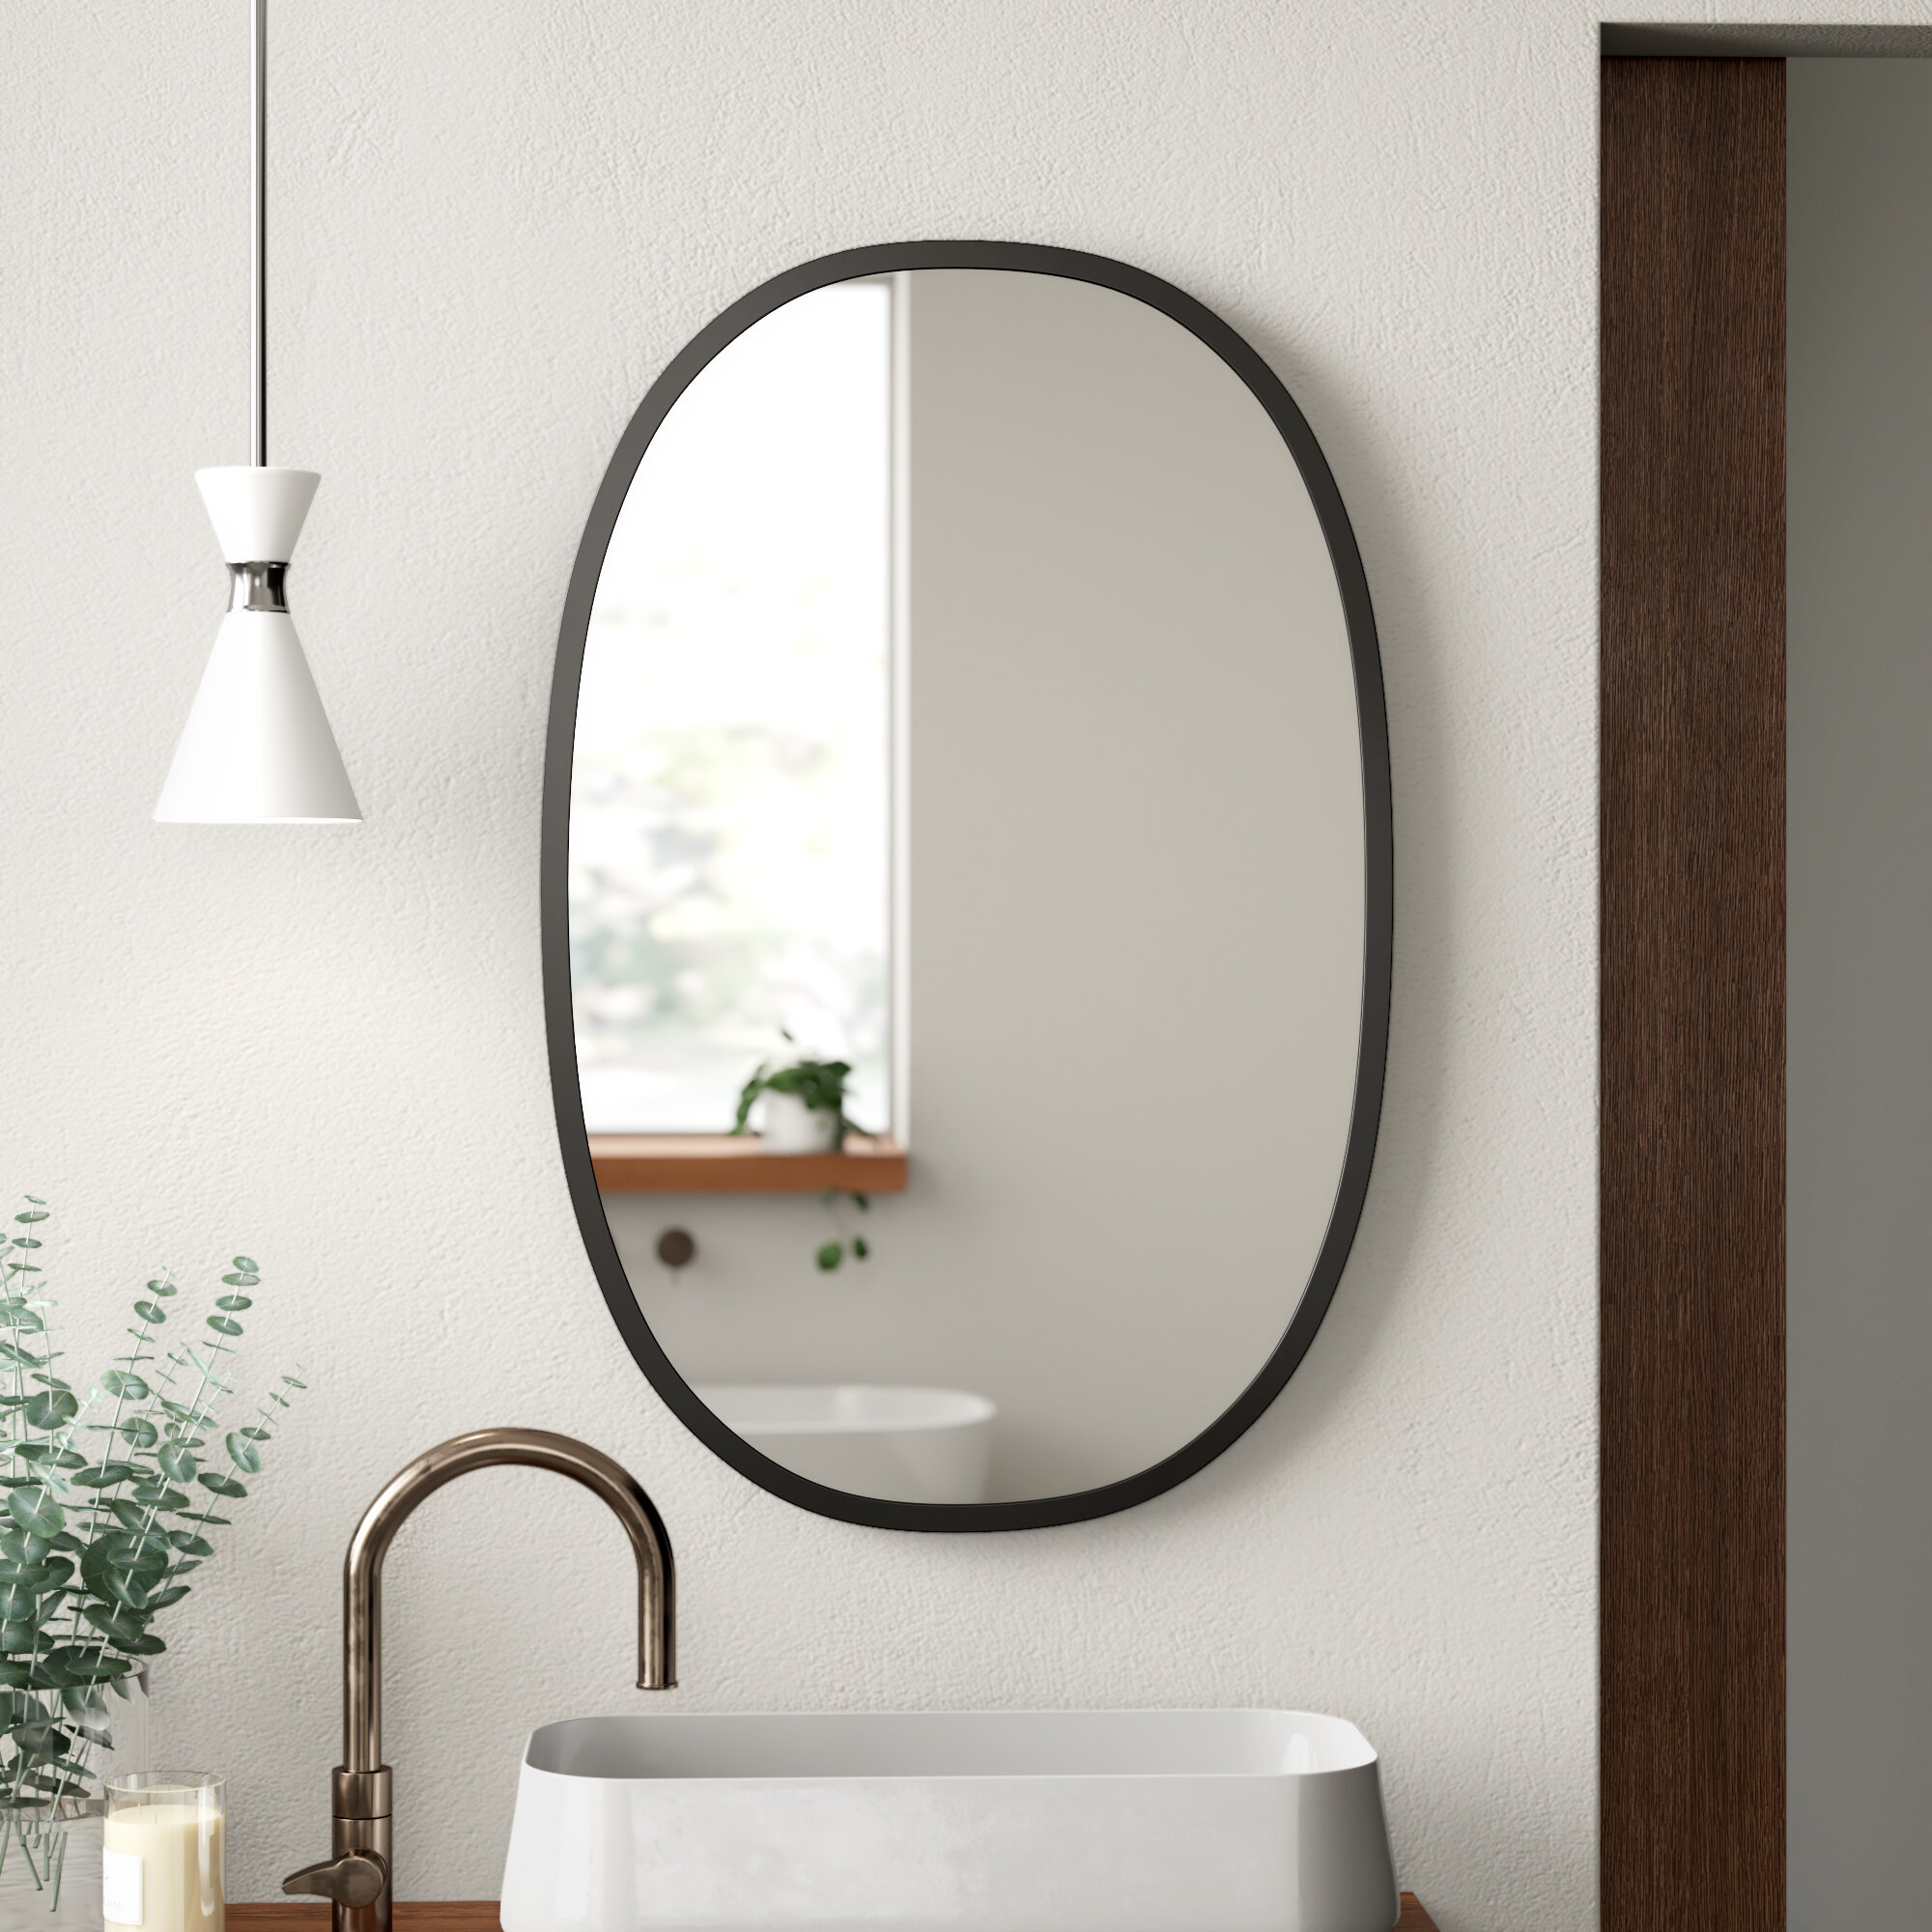 Hub Modern & Contemporary Accent Mirror within Hub Modern and Contemporary Accent Mirrors (Image 3 of 30)